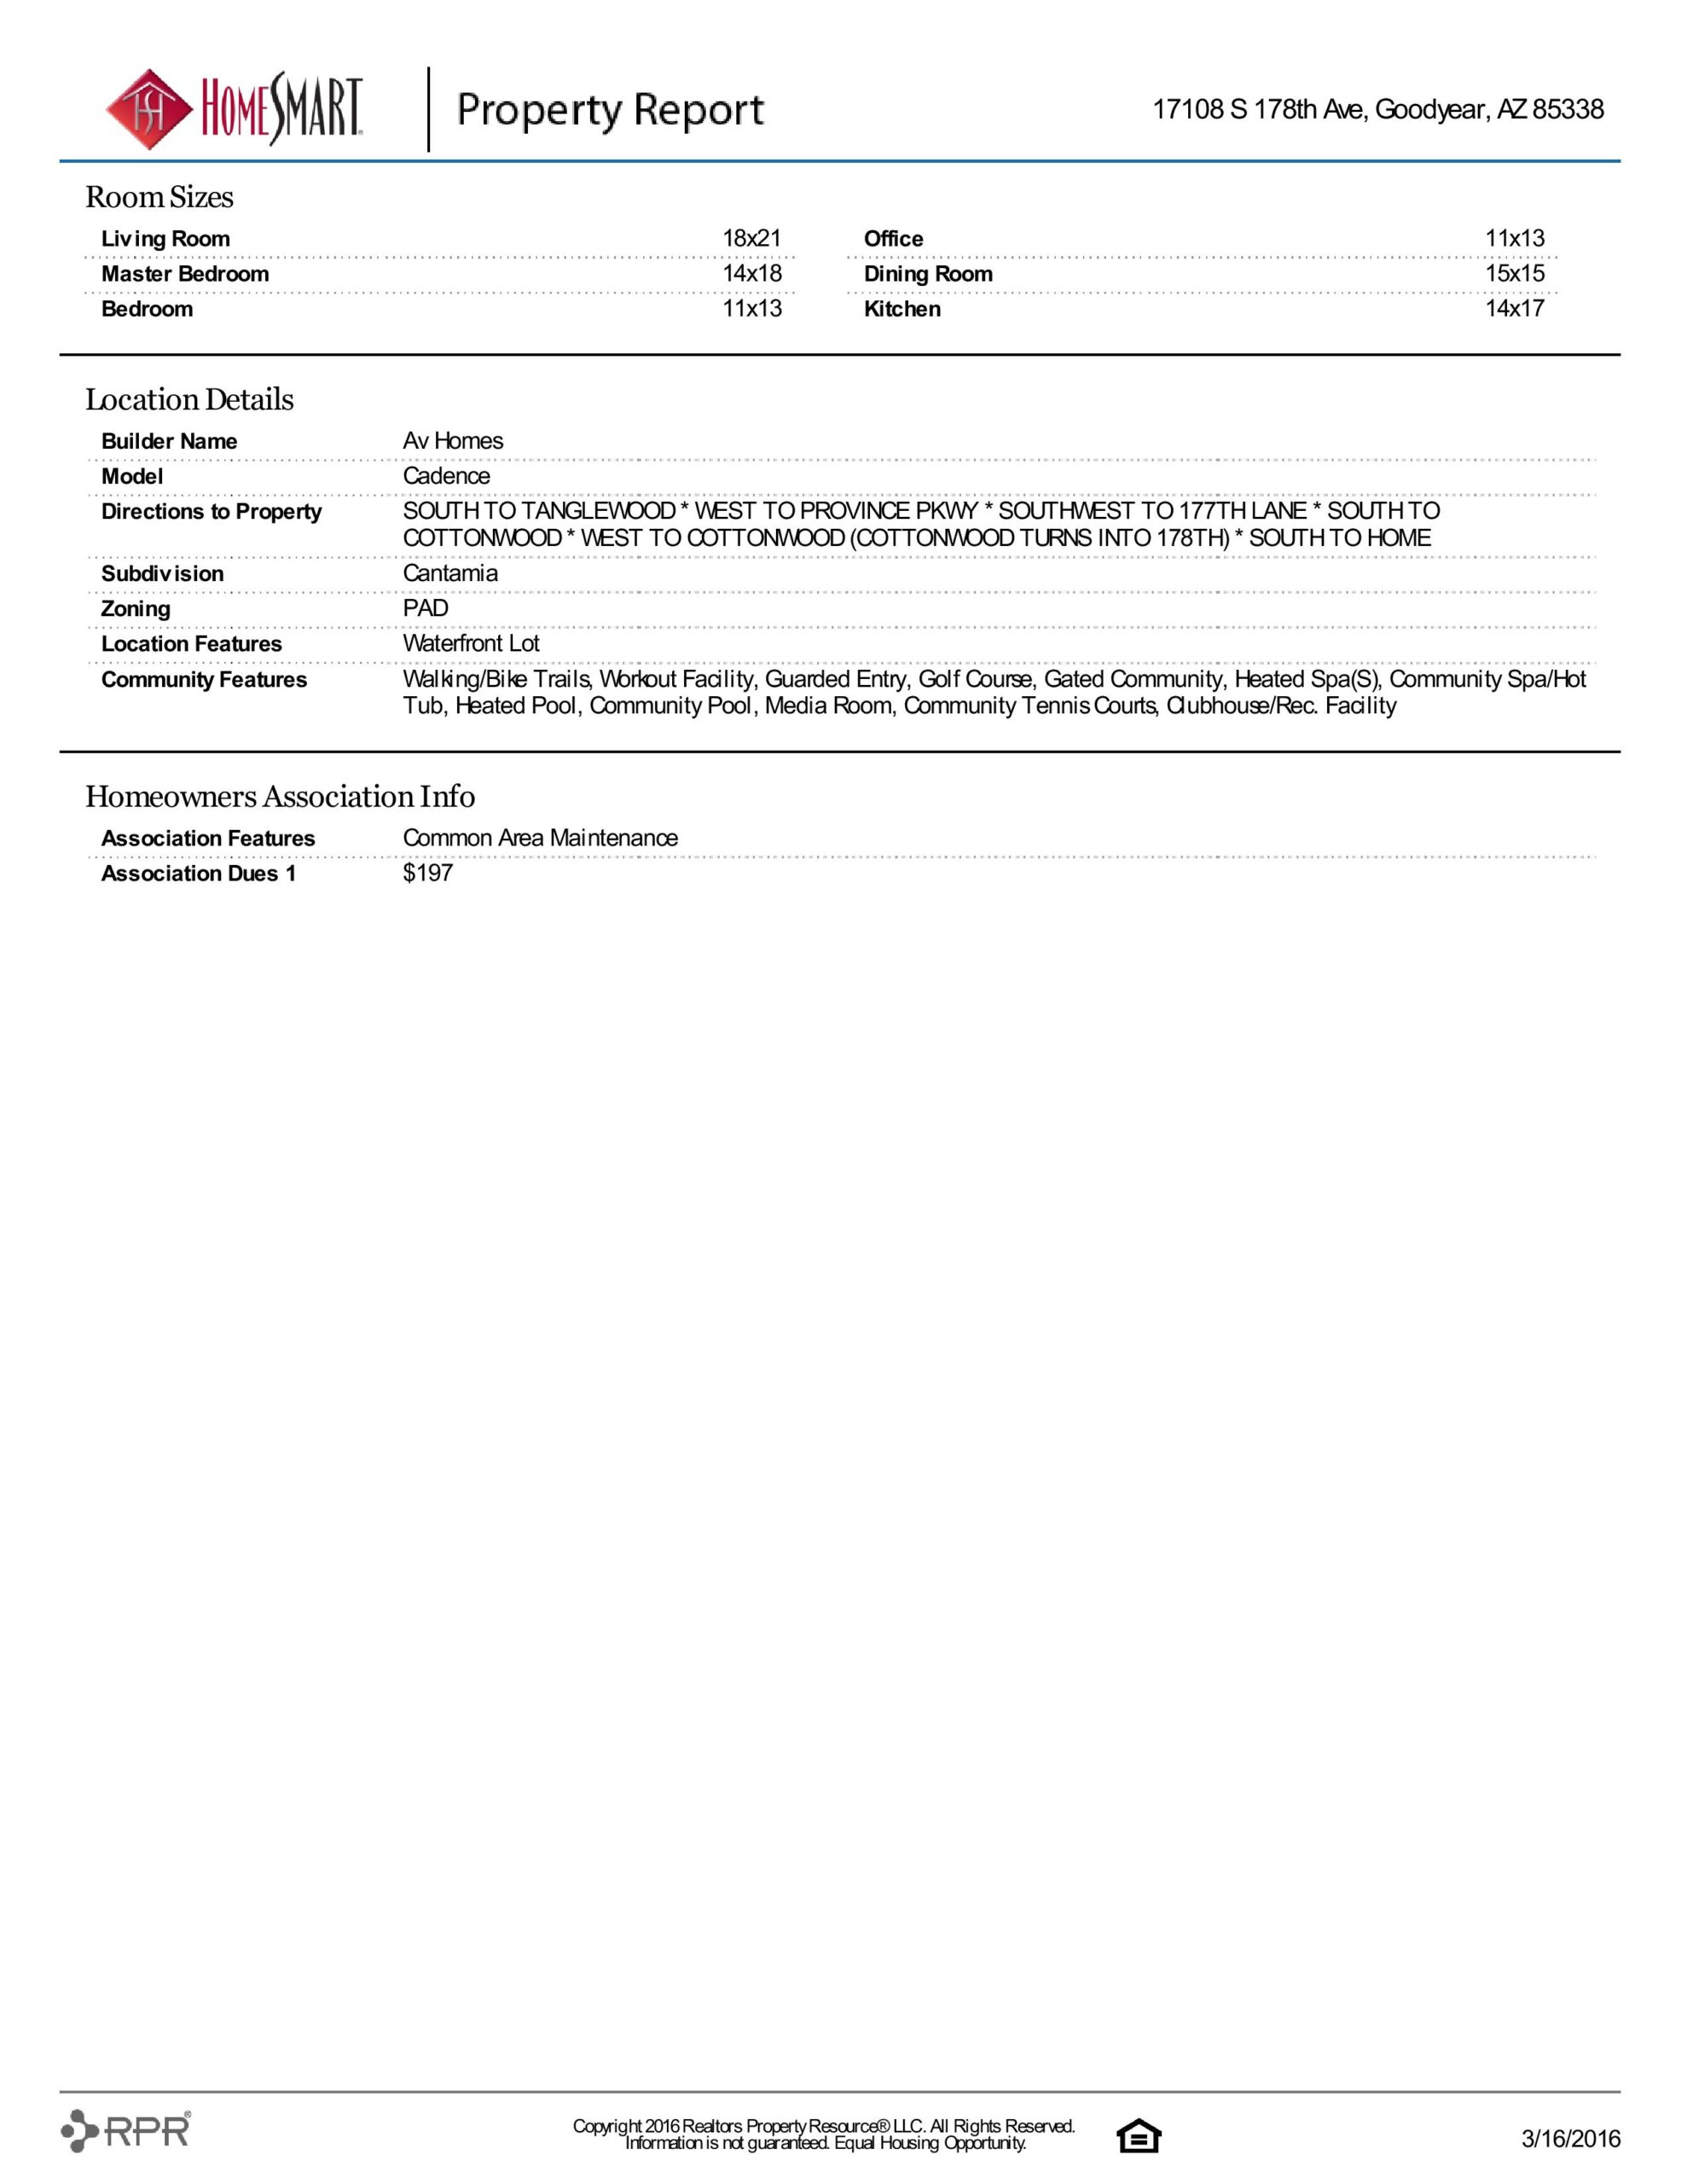 17108 S 178TH AVE PROPERTY REPORT-page-005